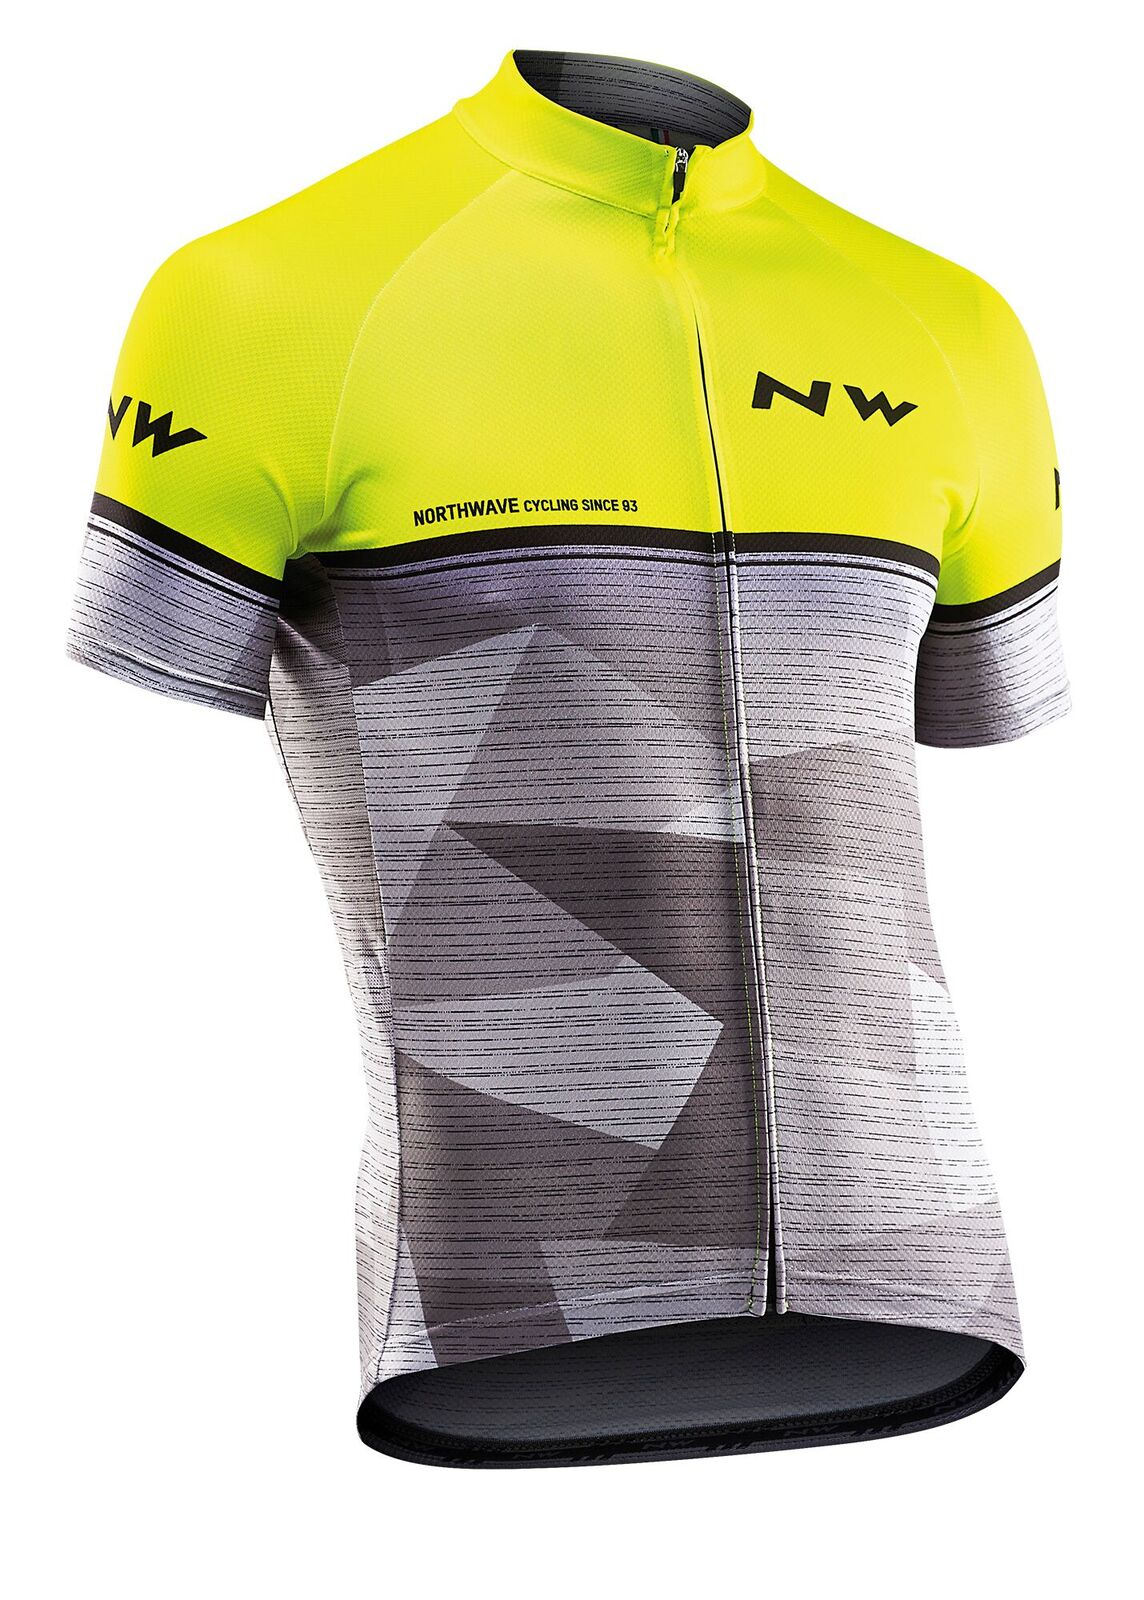 Maglia Ciclismo Maniche Corte Northwave Origin Jersey Short Sleeves YELLOW FLUO-GREY